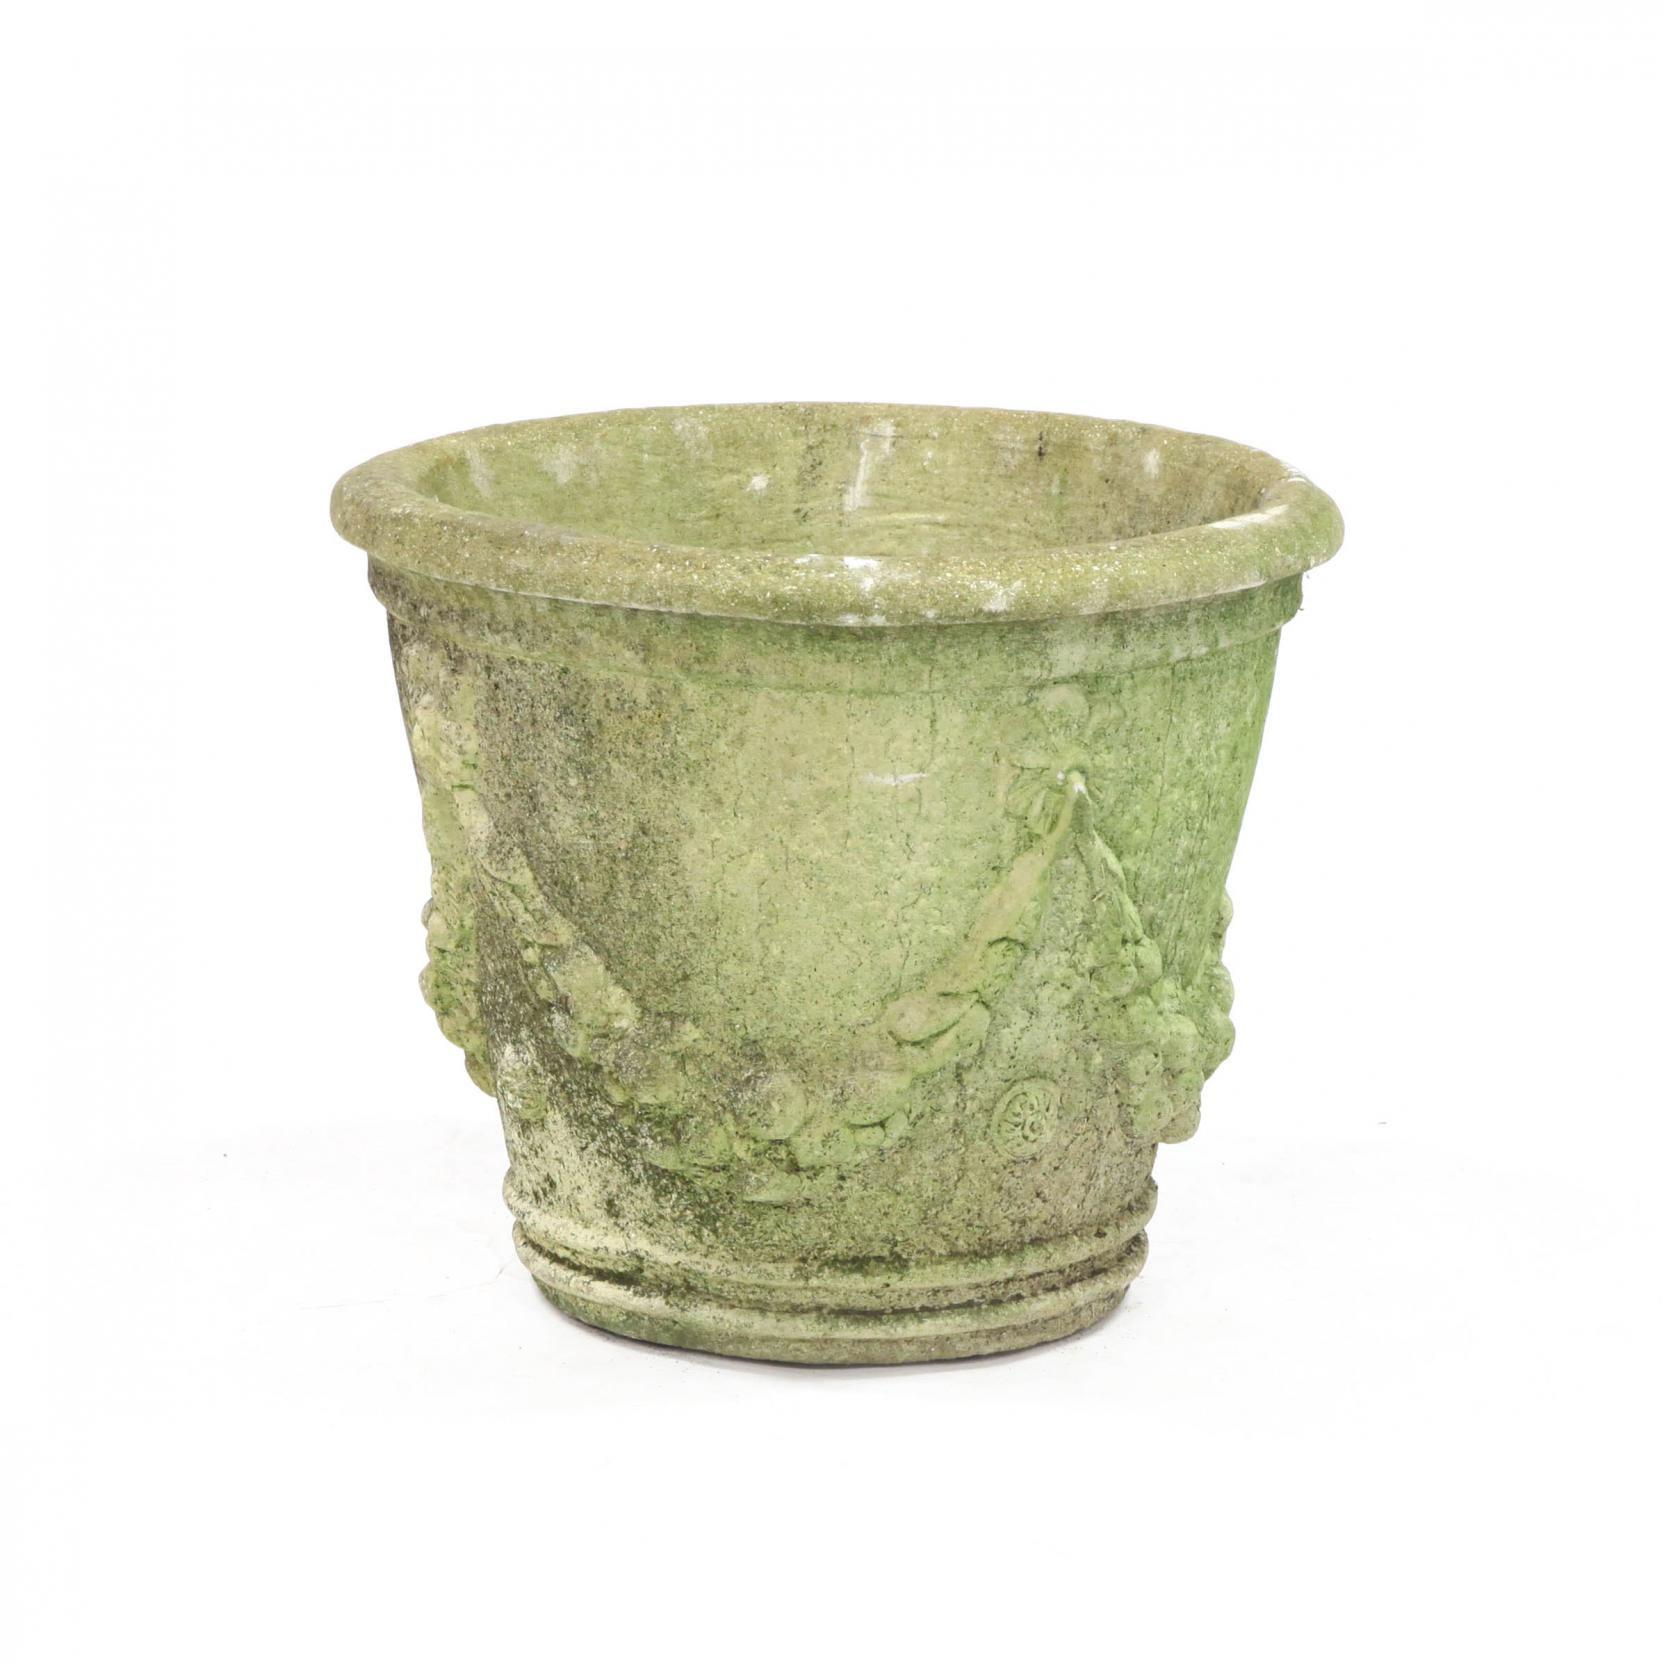 cast-stone-floral-swag-decorated-garden-planter